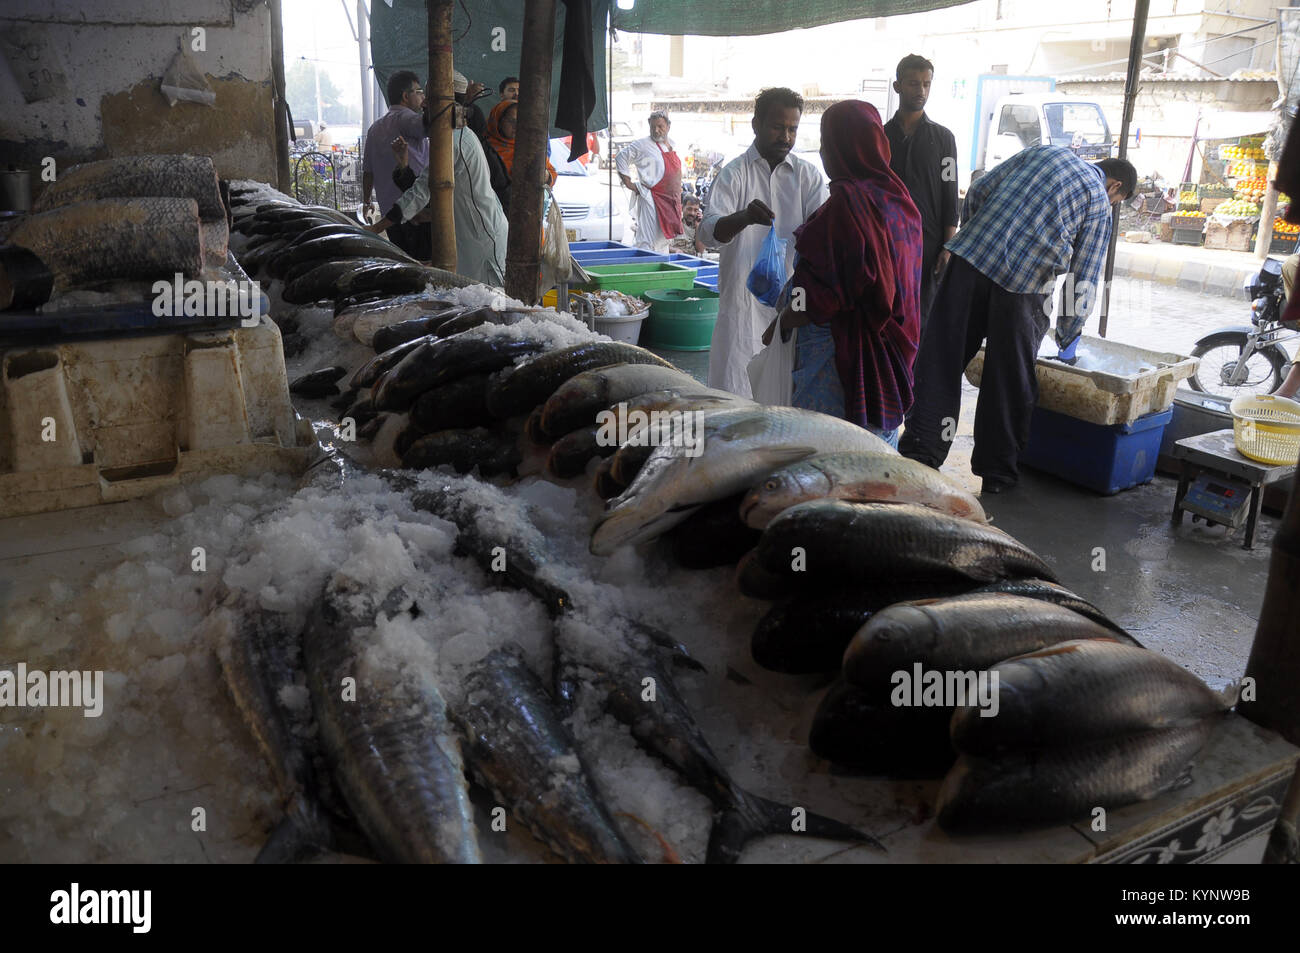 Karachi  15th Jan, 2018  People buy fish at a fish market in